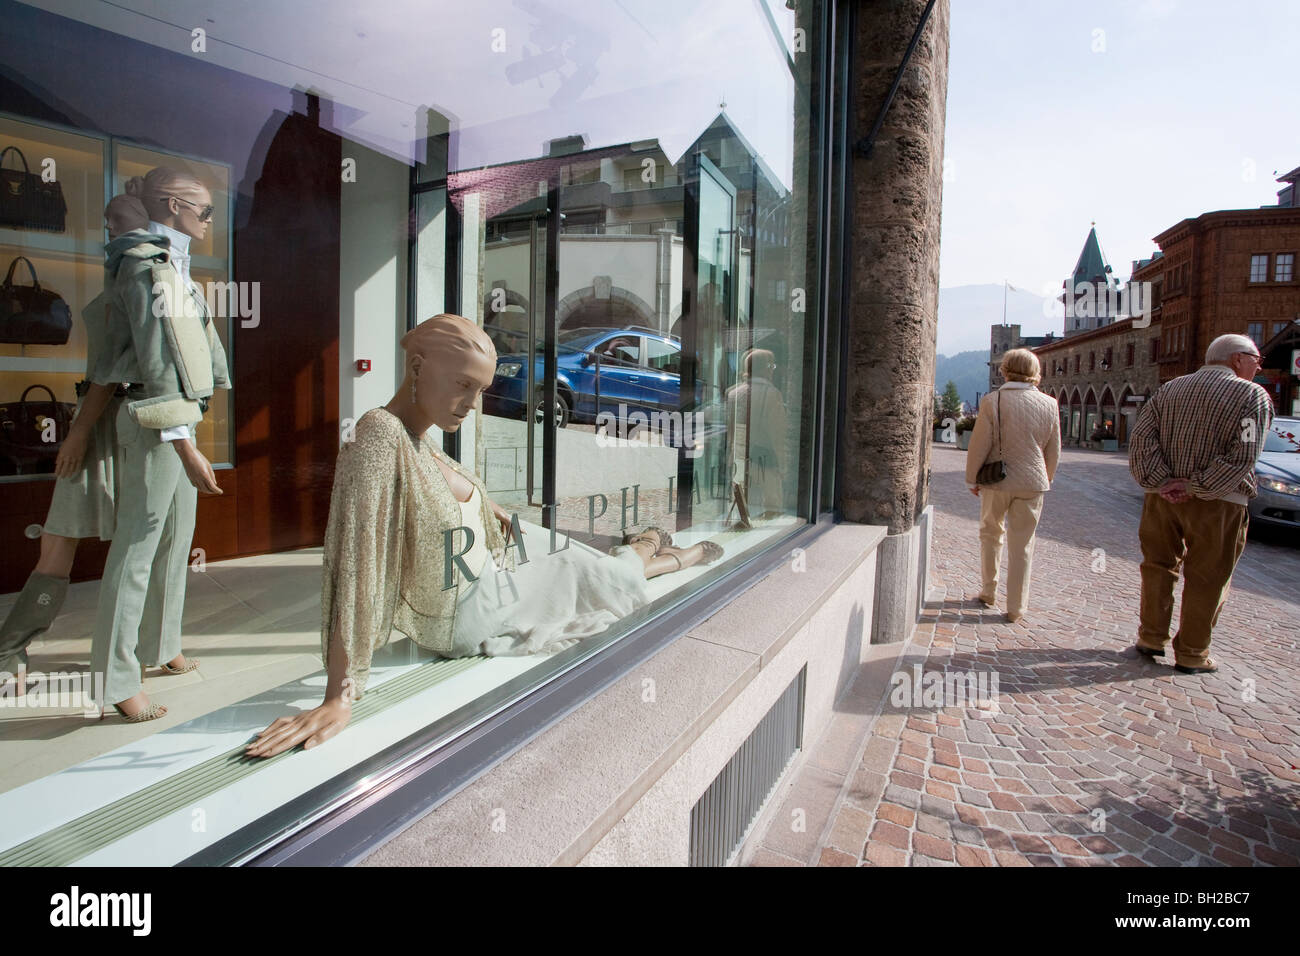 EXCLUSIVE BOUTIQUE, RALPH LAUREN, ST. MORITZ, UPPER ENGADIN, ENGADIN, GRISONS, SWITZERLAND - Stock Image